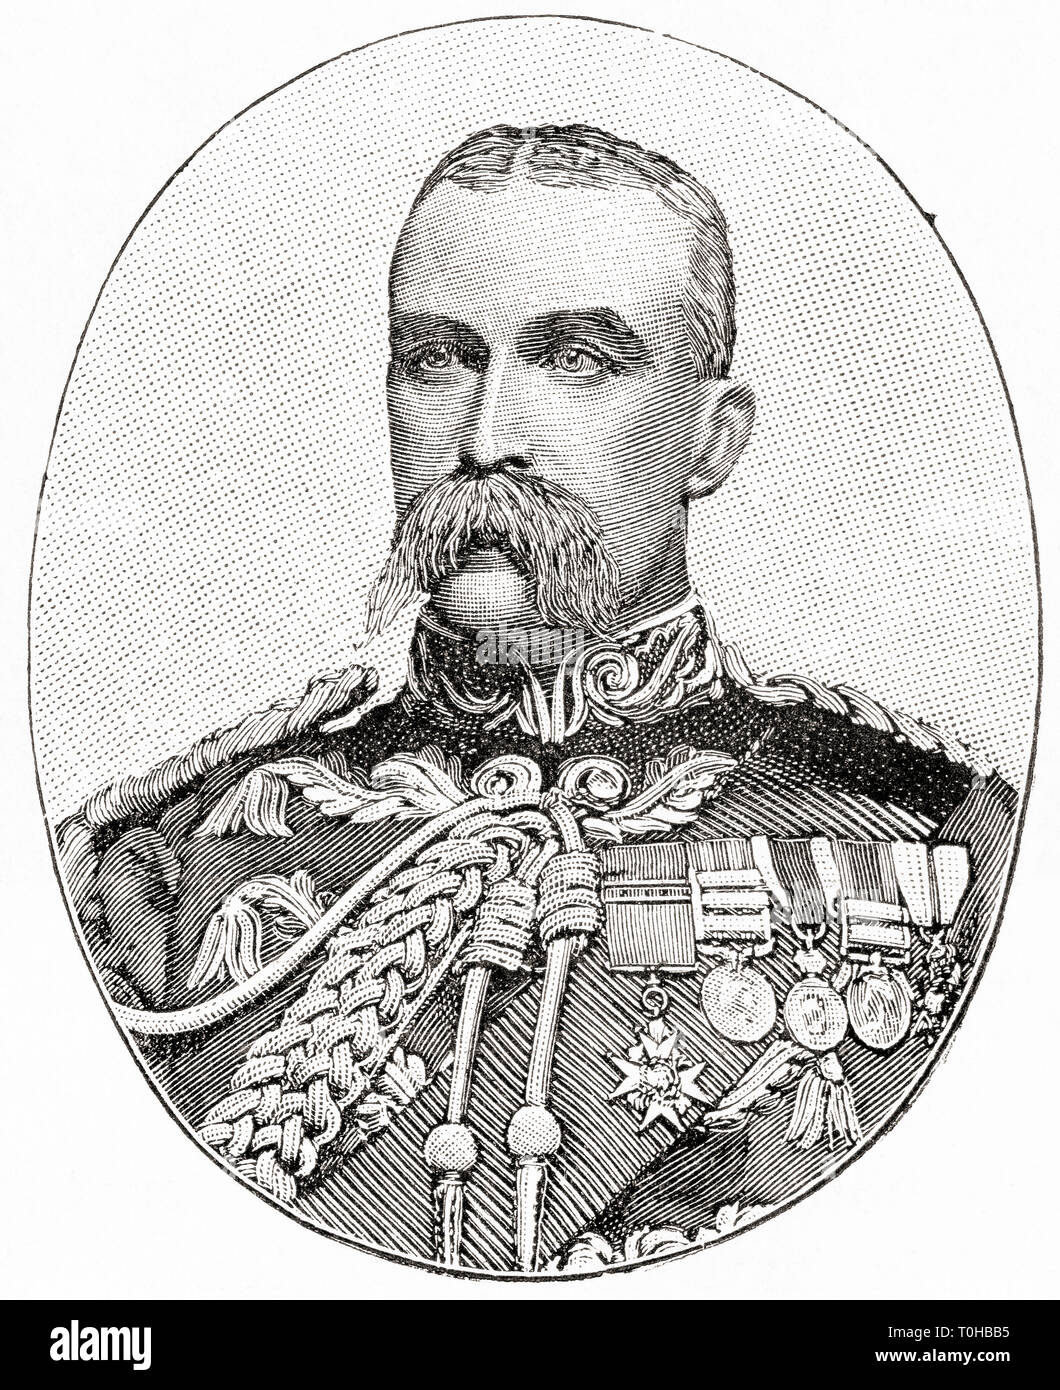 General Sir Alfred Gaselee, British soldier - Stock Image